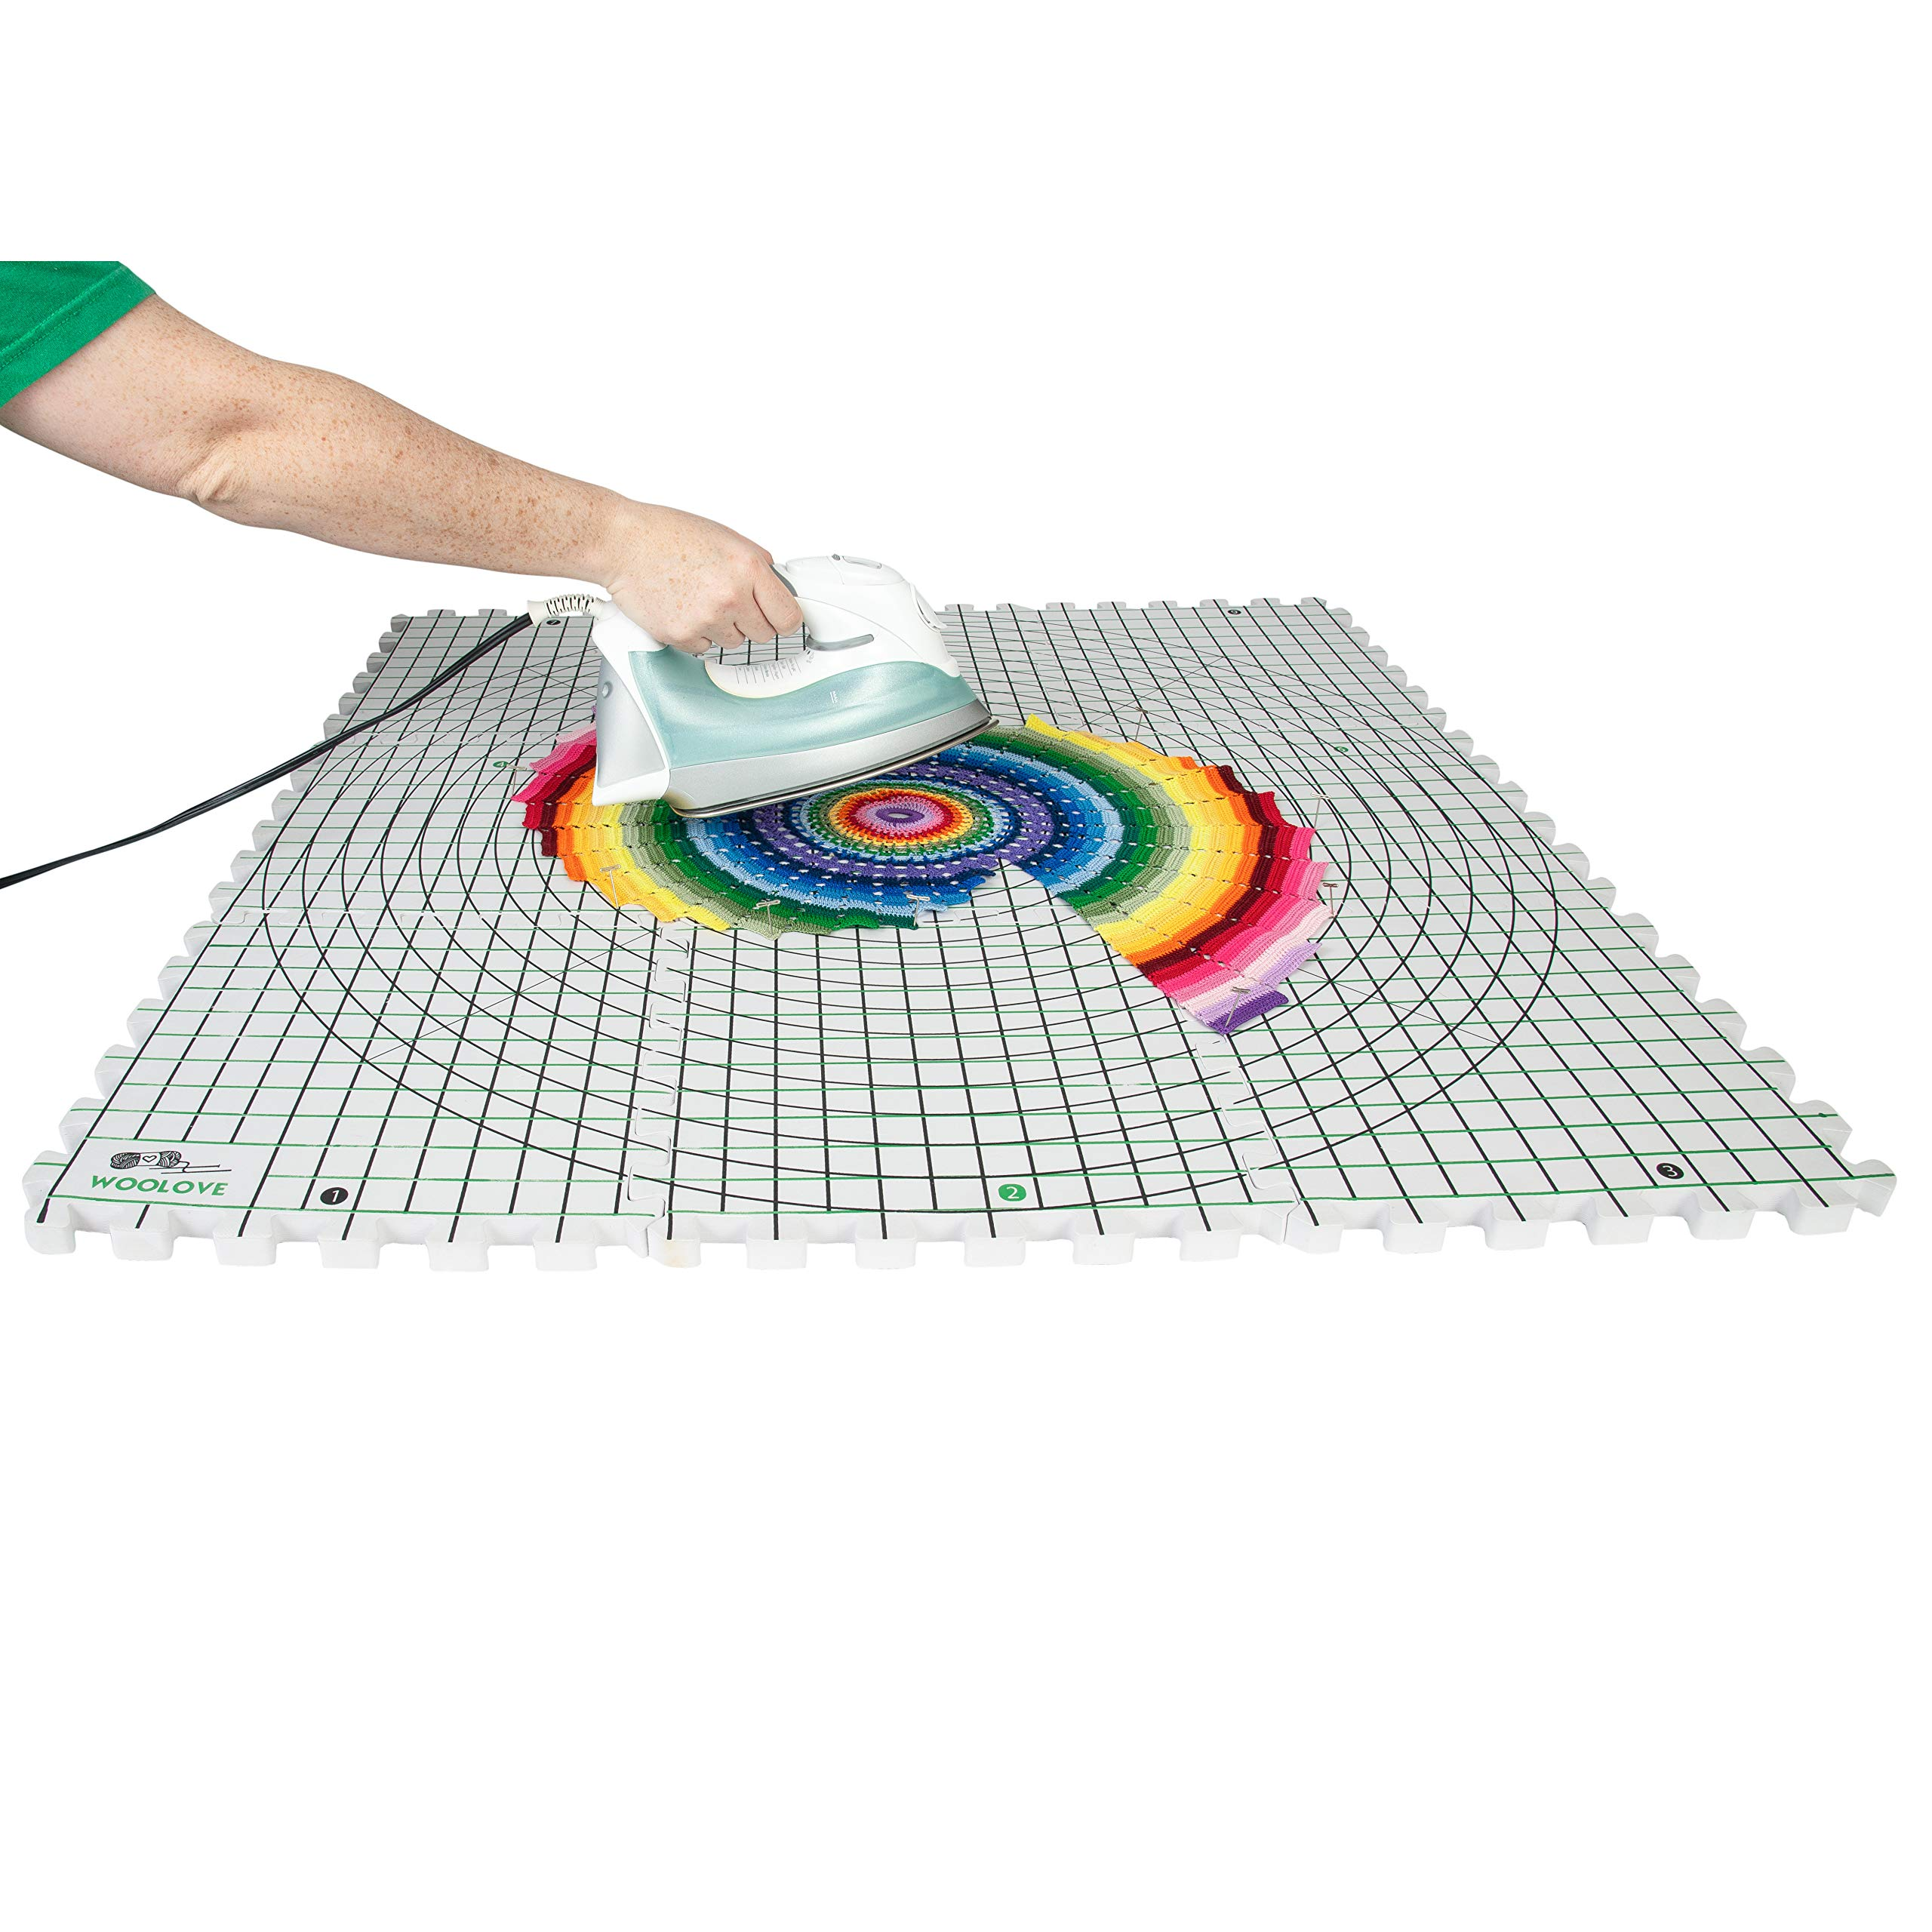 Extra Thick Blocking Mats for Wet and Steam Blocking with Grids and Radial Circles - Set of 9 Marked with Numbers Includes 100 t pins and Storage Bag by WOOLOVE (Image #6)